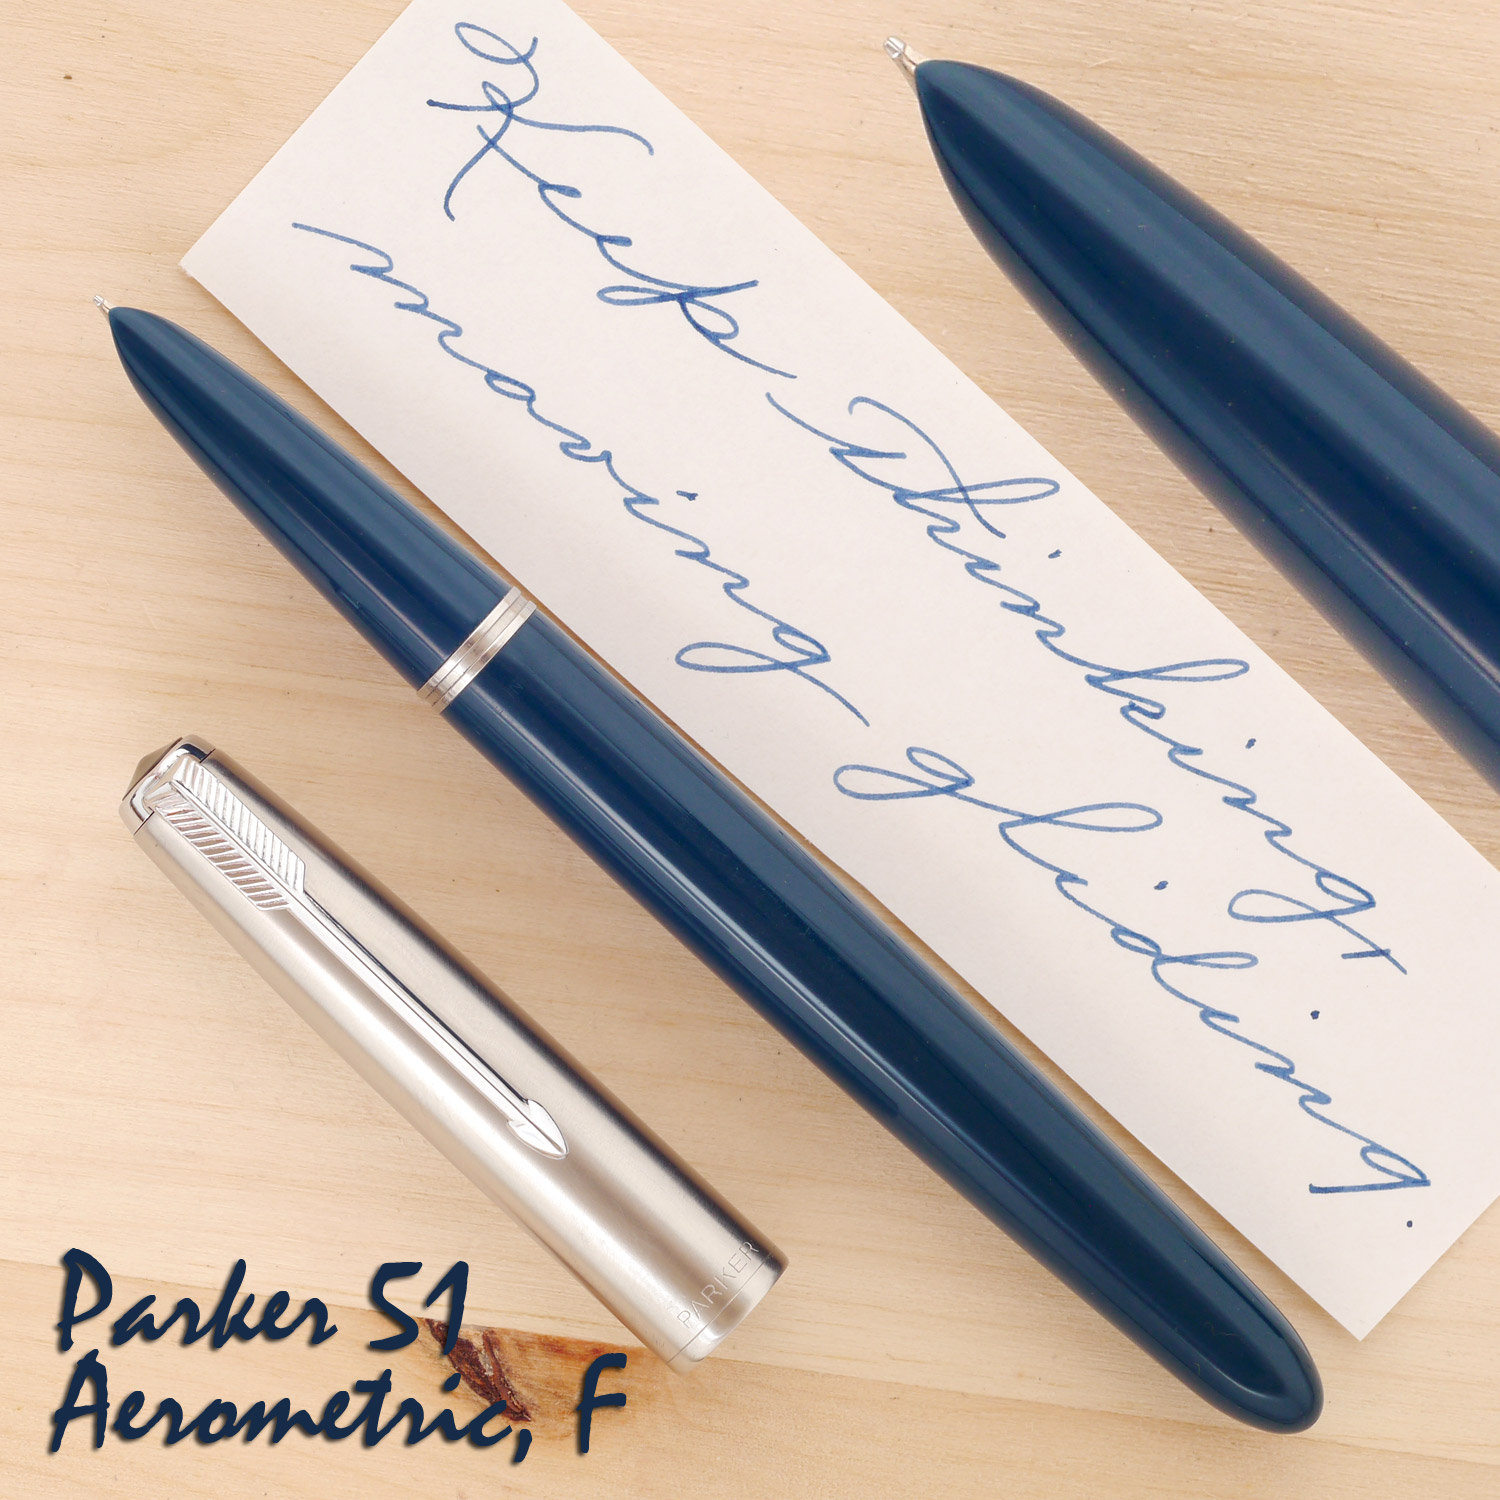 Parker 51 Aerometric Teal Blue, F, with the cap off